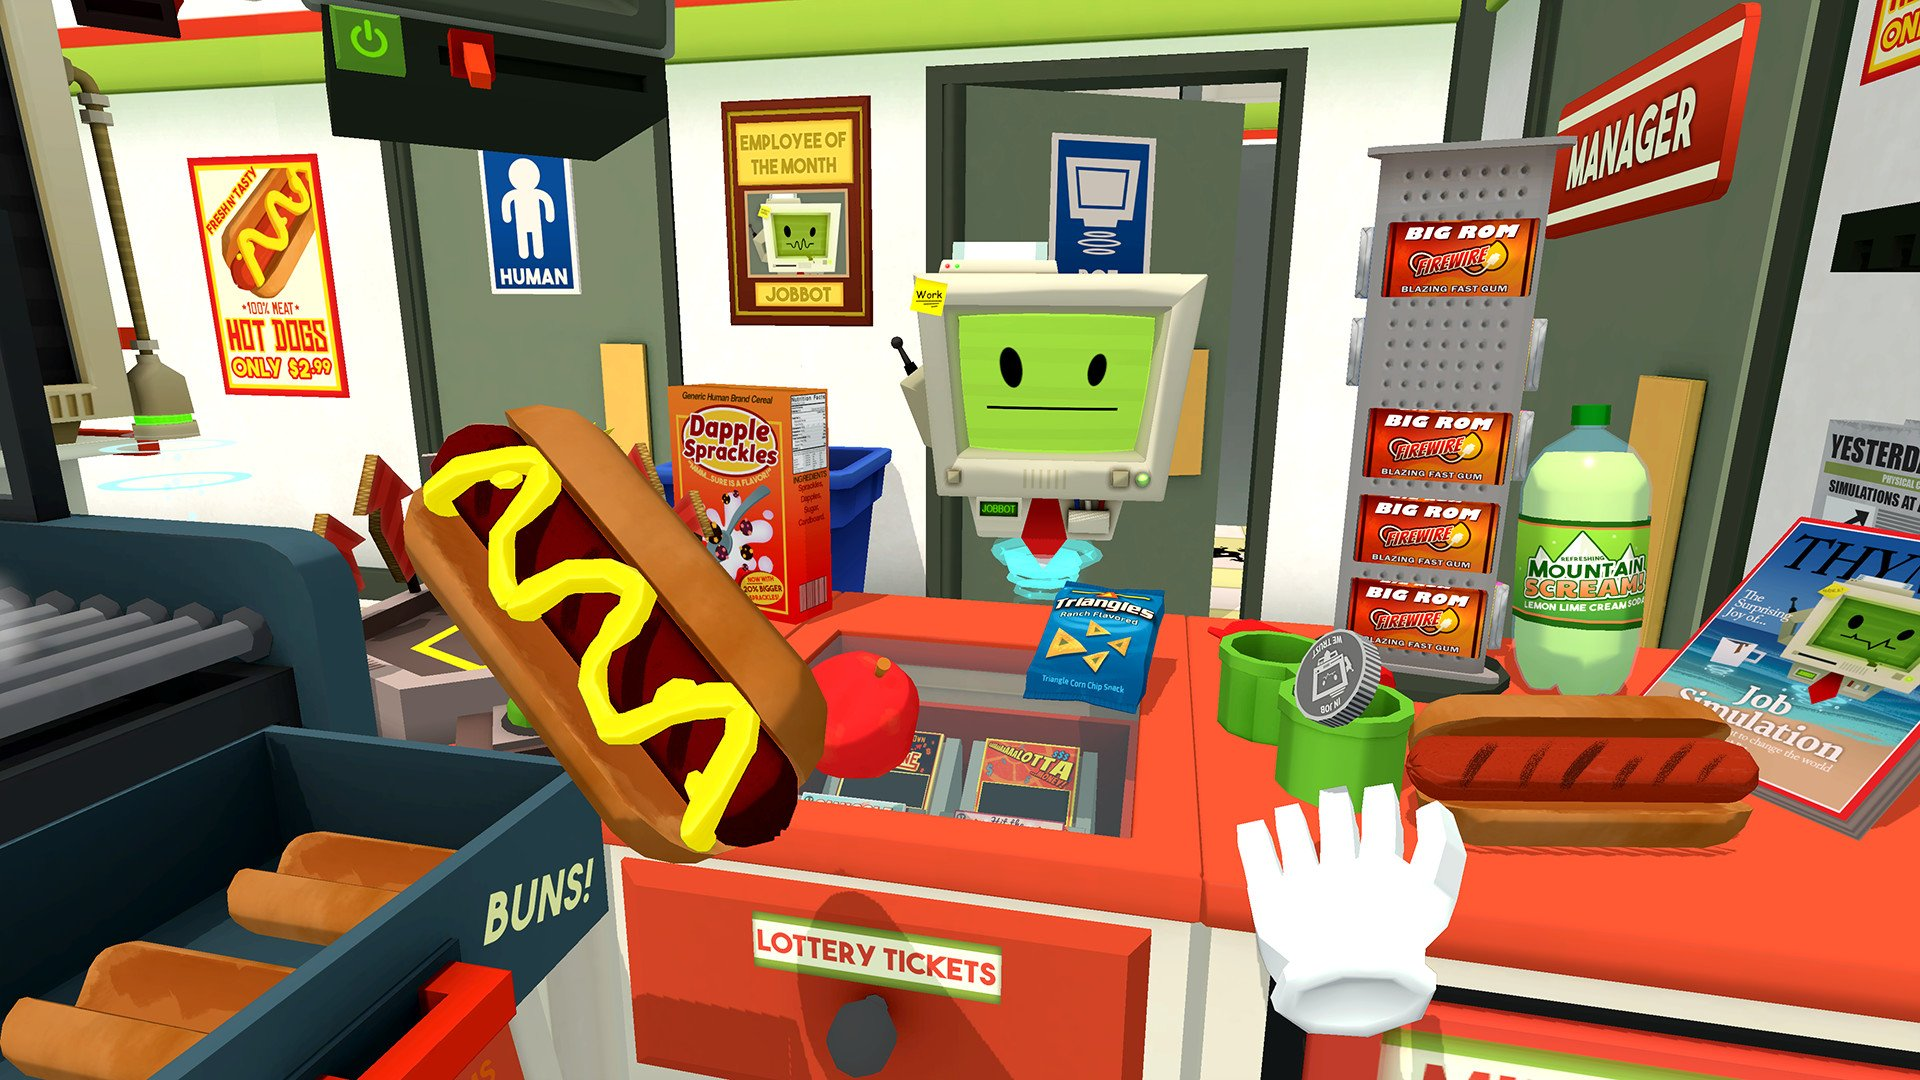 Job Simulator has won numerous accolades, including best VR/AR game at the 2017 GDC Awards